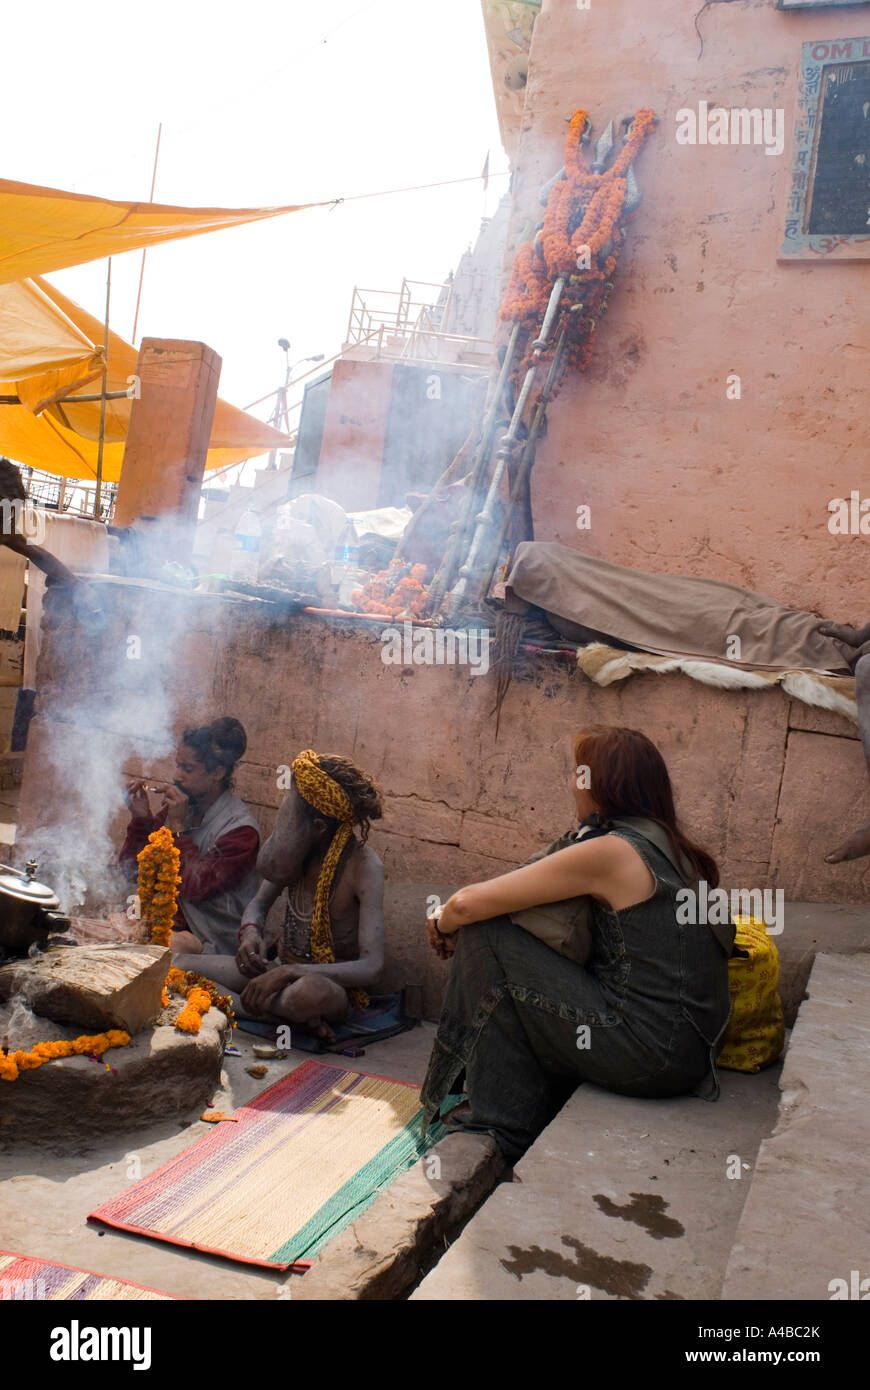 Stock image of a sadhu in Varanasi with severe edema of the face - Stock Image